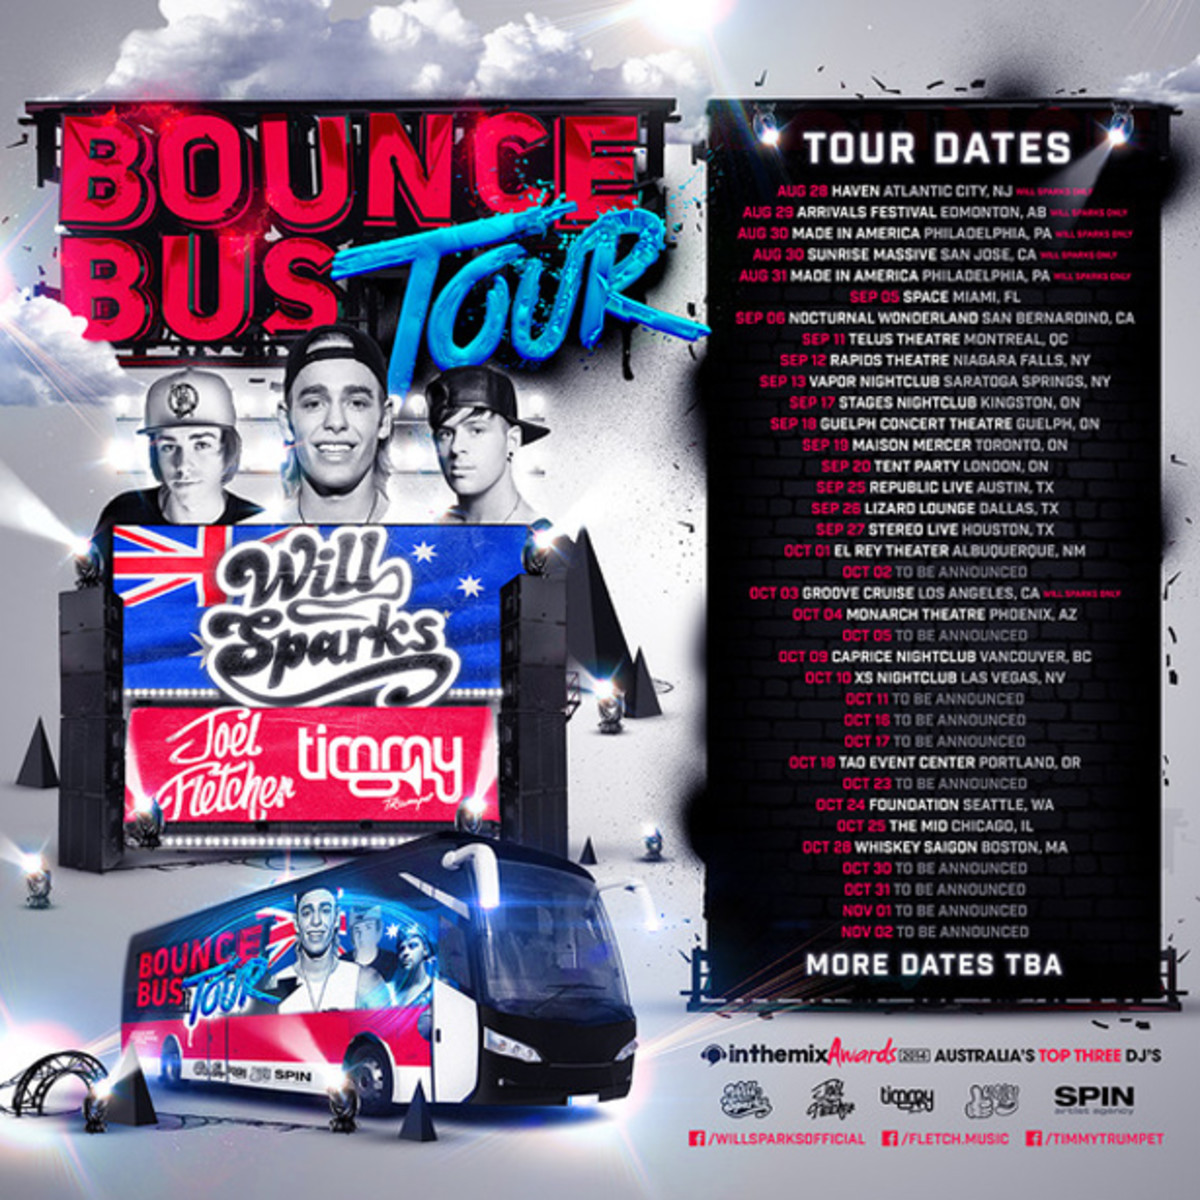 [Interview] Will Sparks, Joel Flecther & Timmy Trumpet On The Bounce Bus Tour